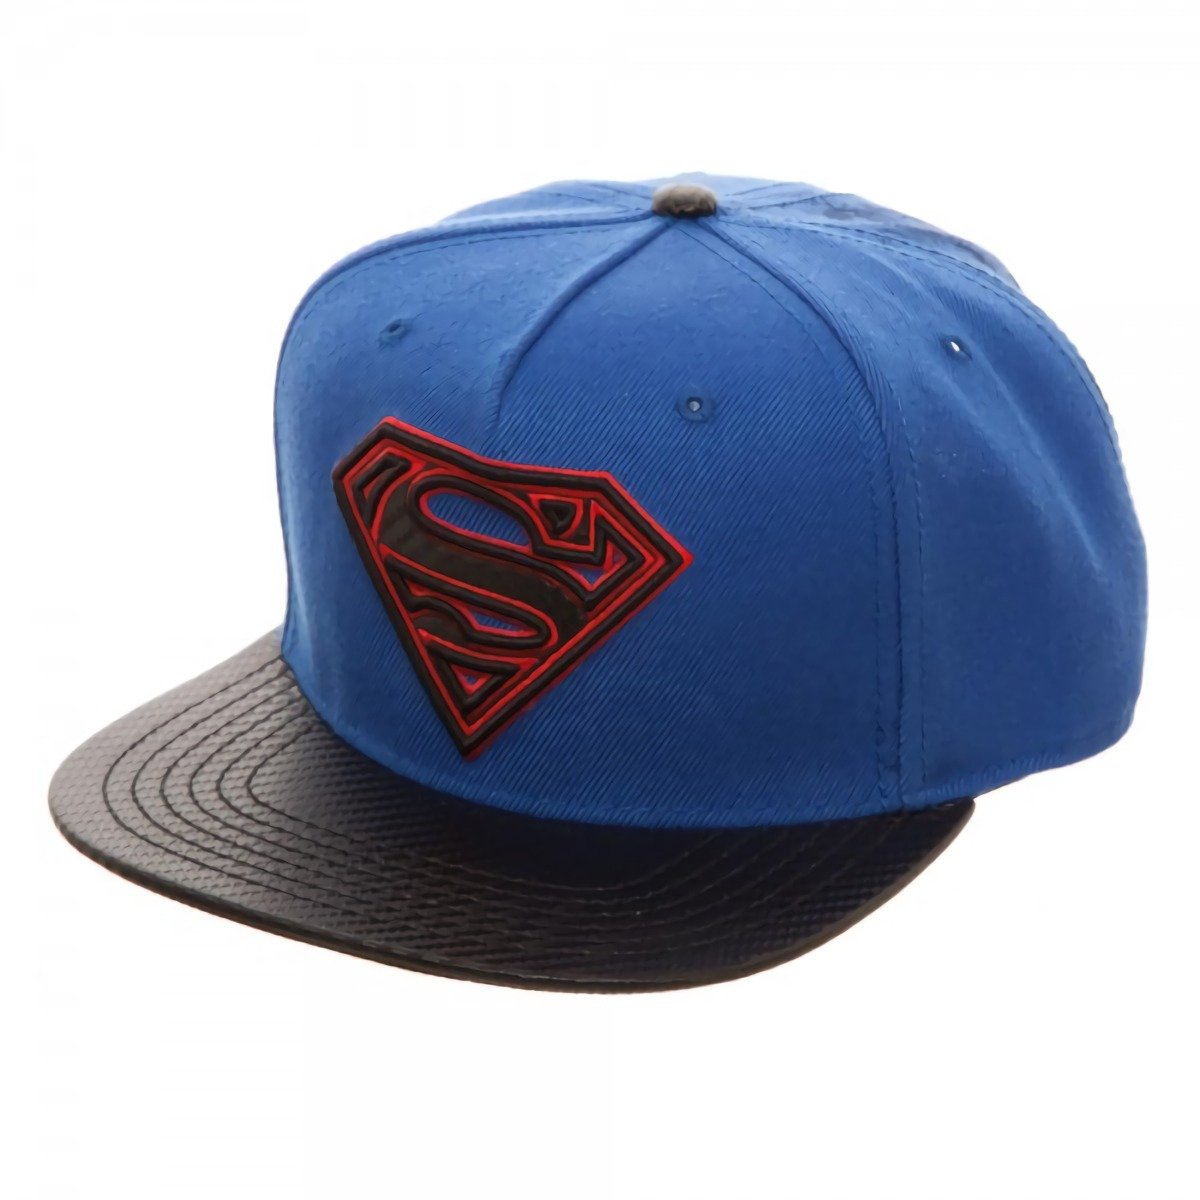 c17b6851e841b Amazon.com  Superman Carbon Fiber Snapback Baseball Hat  Clothing